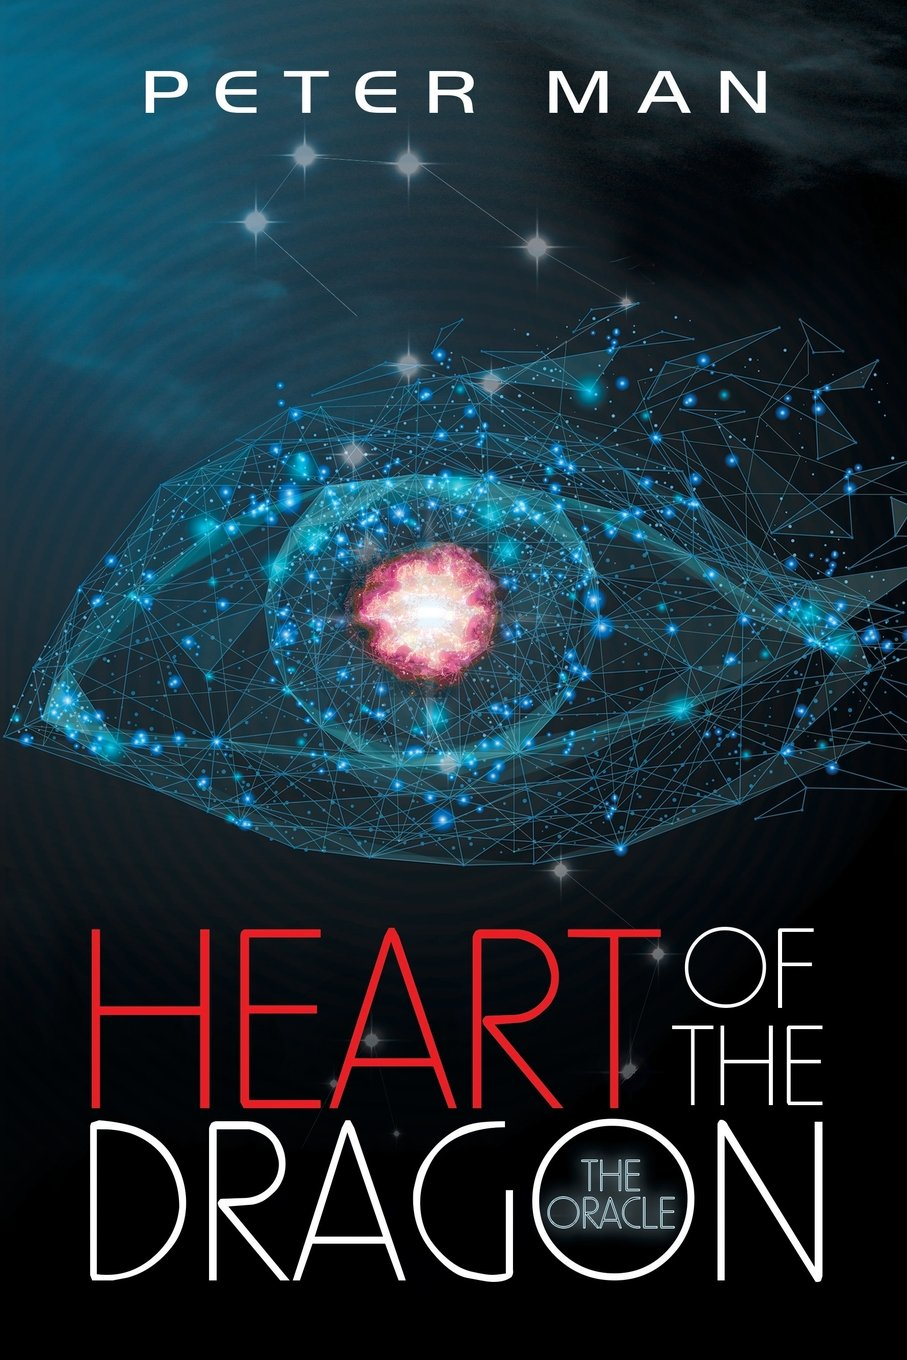 Heart of the Dragon: The Oracle PDF